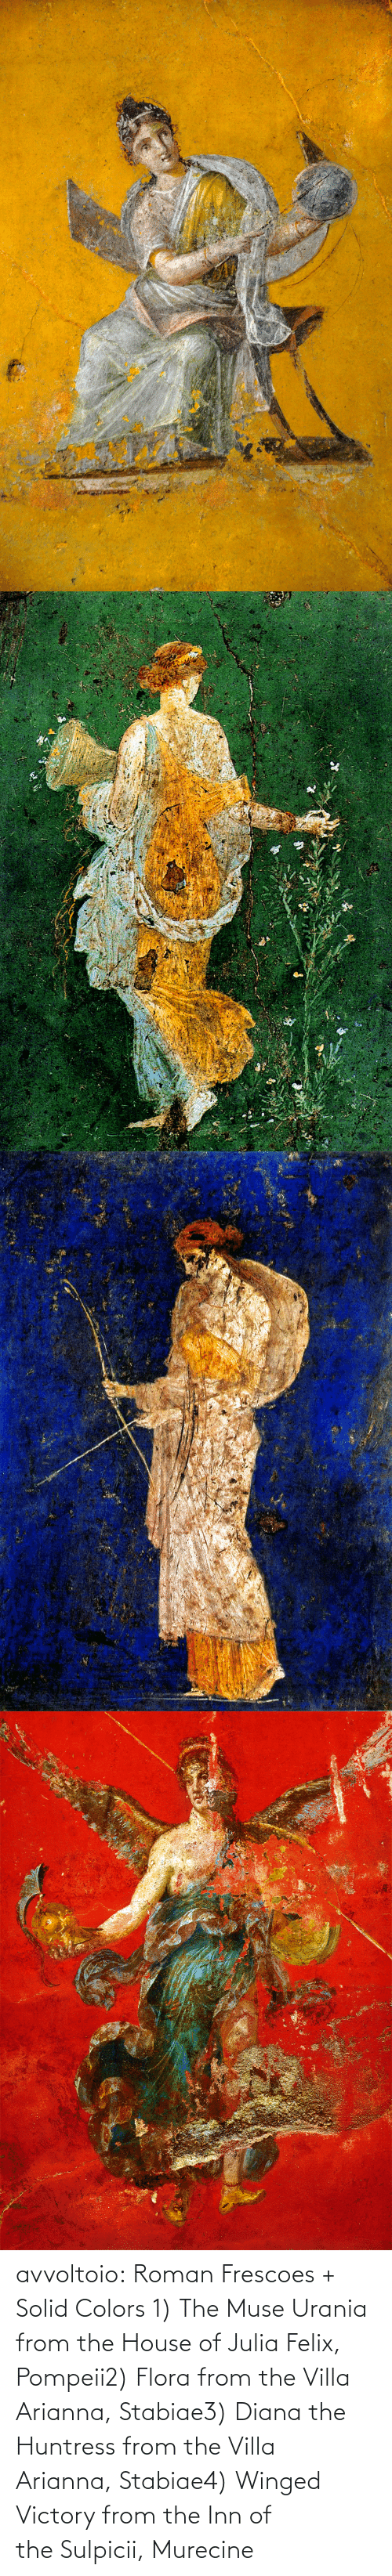 diana: avvoltoio: Roman Frescoes + Solid Colors 1) The Muse Urania from the House of Julia Felix, Pompeii2) Flora from the Villa Arianna, Stabiae3) Diana the Huntress from the Villa Arianna, Stabiae4) Winged Victory from the Inn of the Sulpicii, Murecine